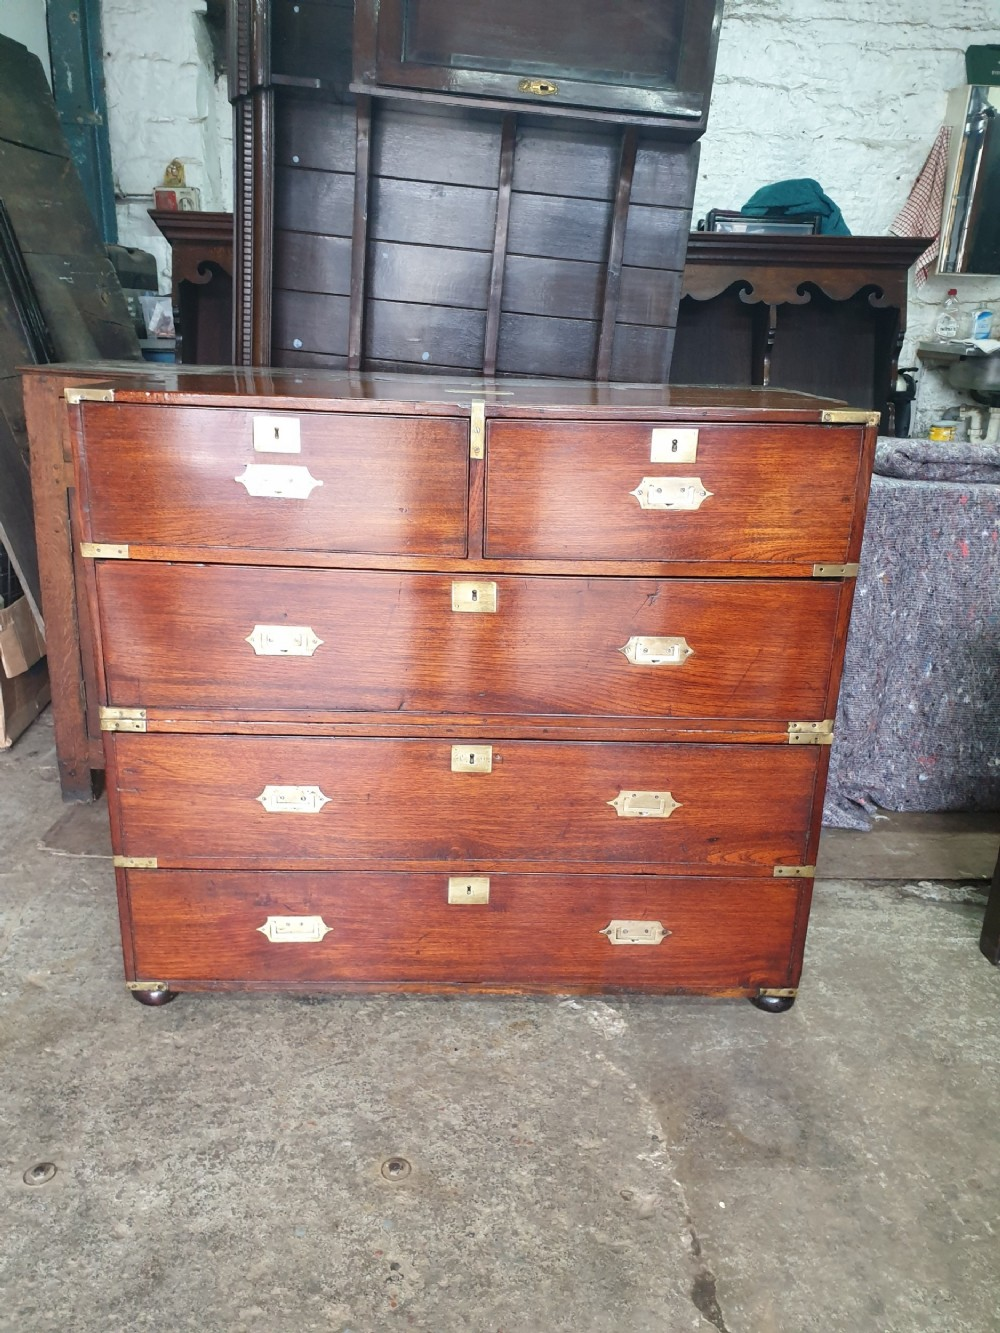 a good original early 19th century mahogany brass bound 2 part military chest fully stamped